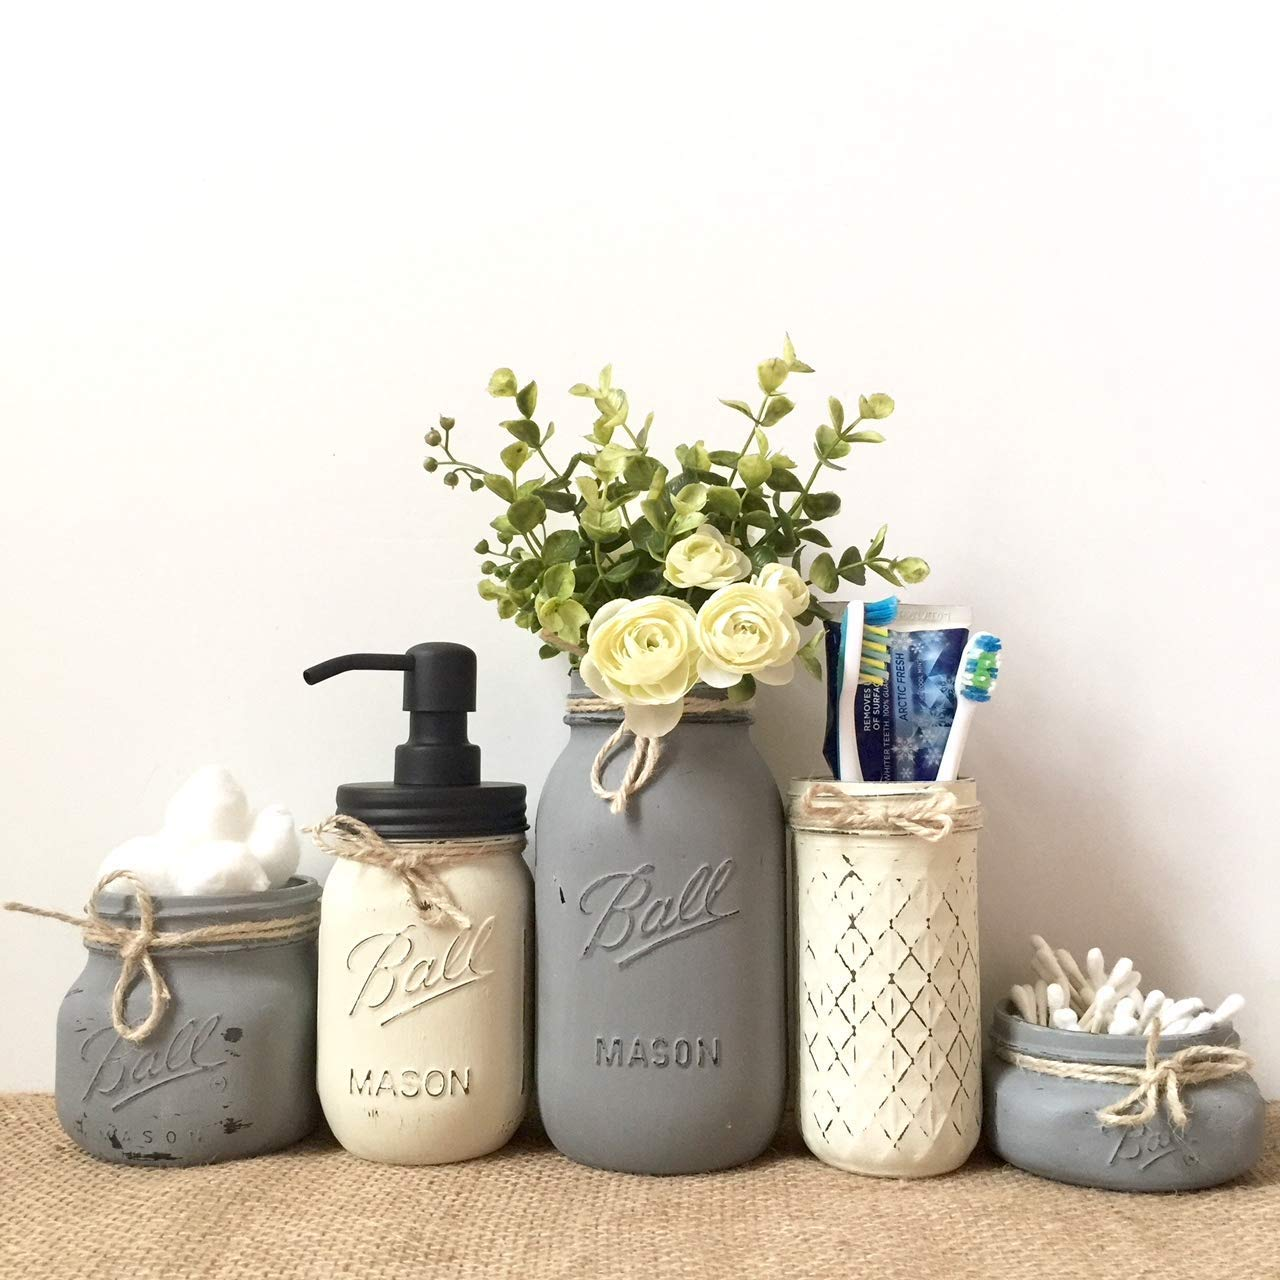 Mason Jar Bathroom Organization Set, 5 Piece Set, Your Choice of Colors, Silk Flowers Optional